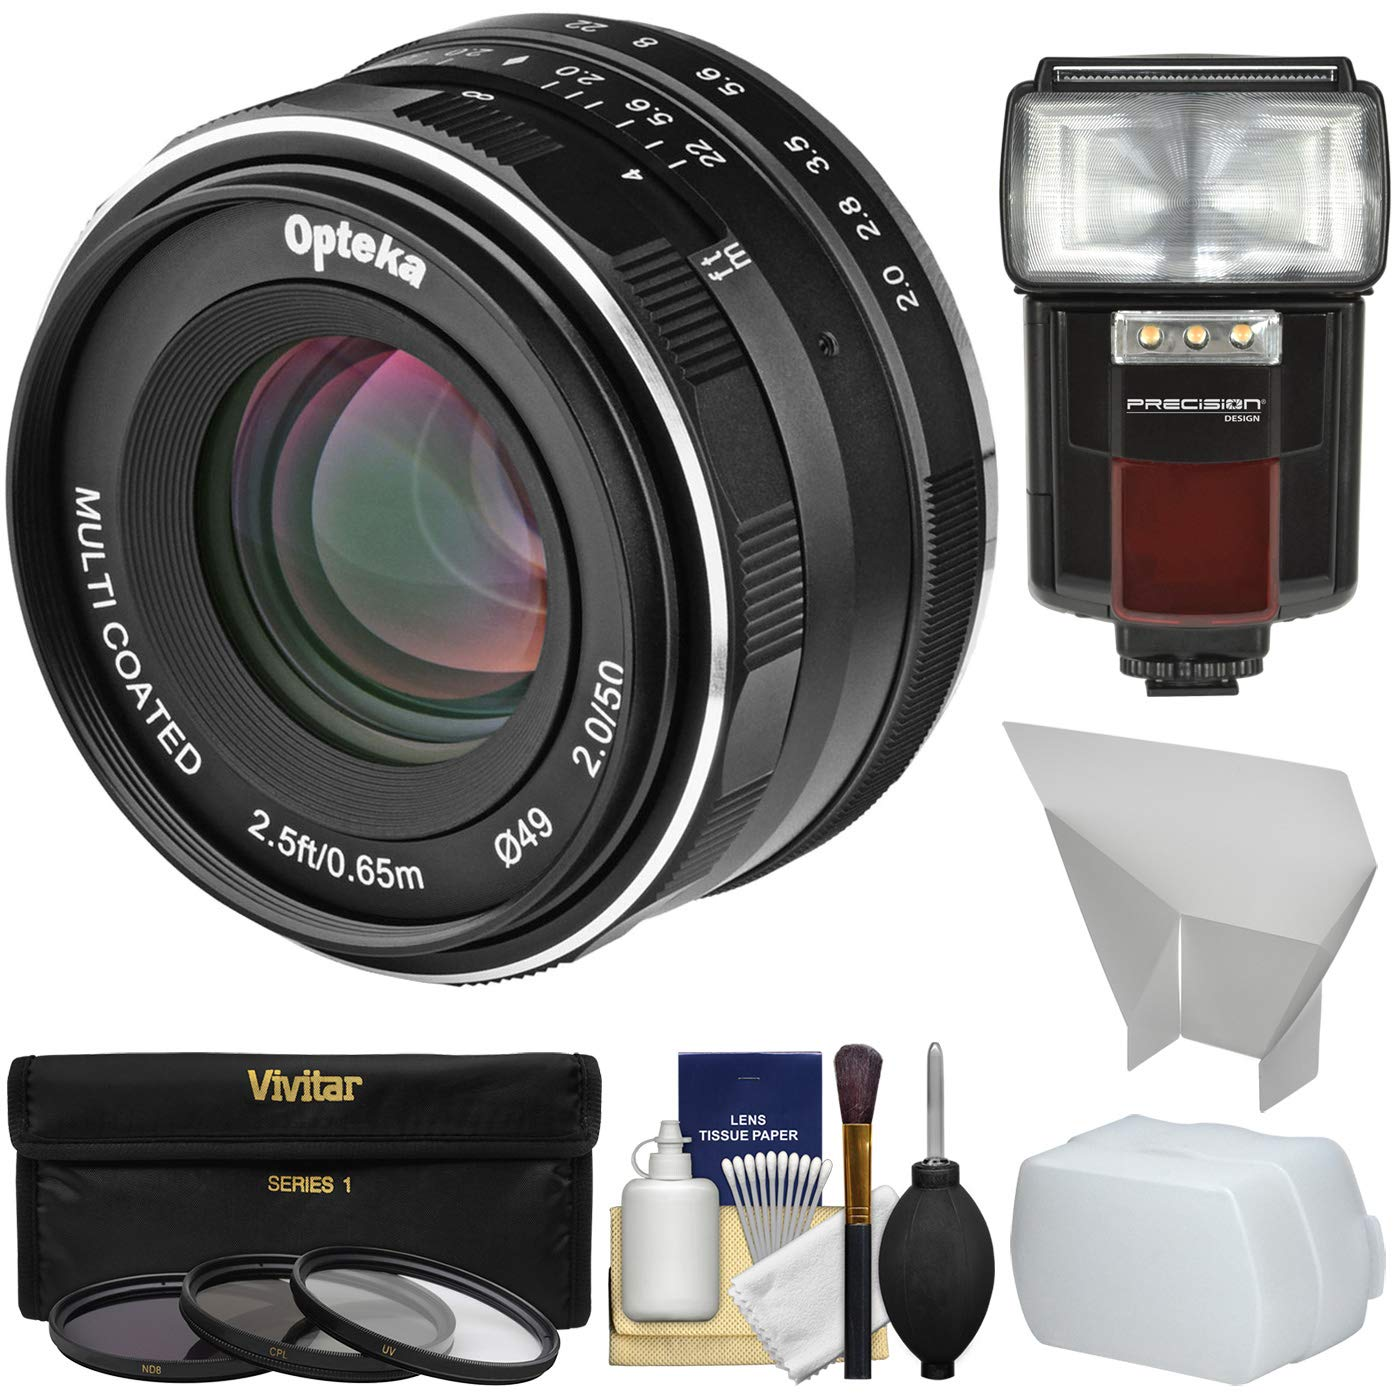 Opteka 50mm f/2 HD MF Prime Lens with 3 Filters + Flash + Diffusers Kit for Sony Alpha E-Mount Digital Cameras